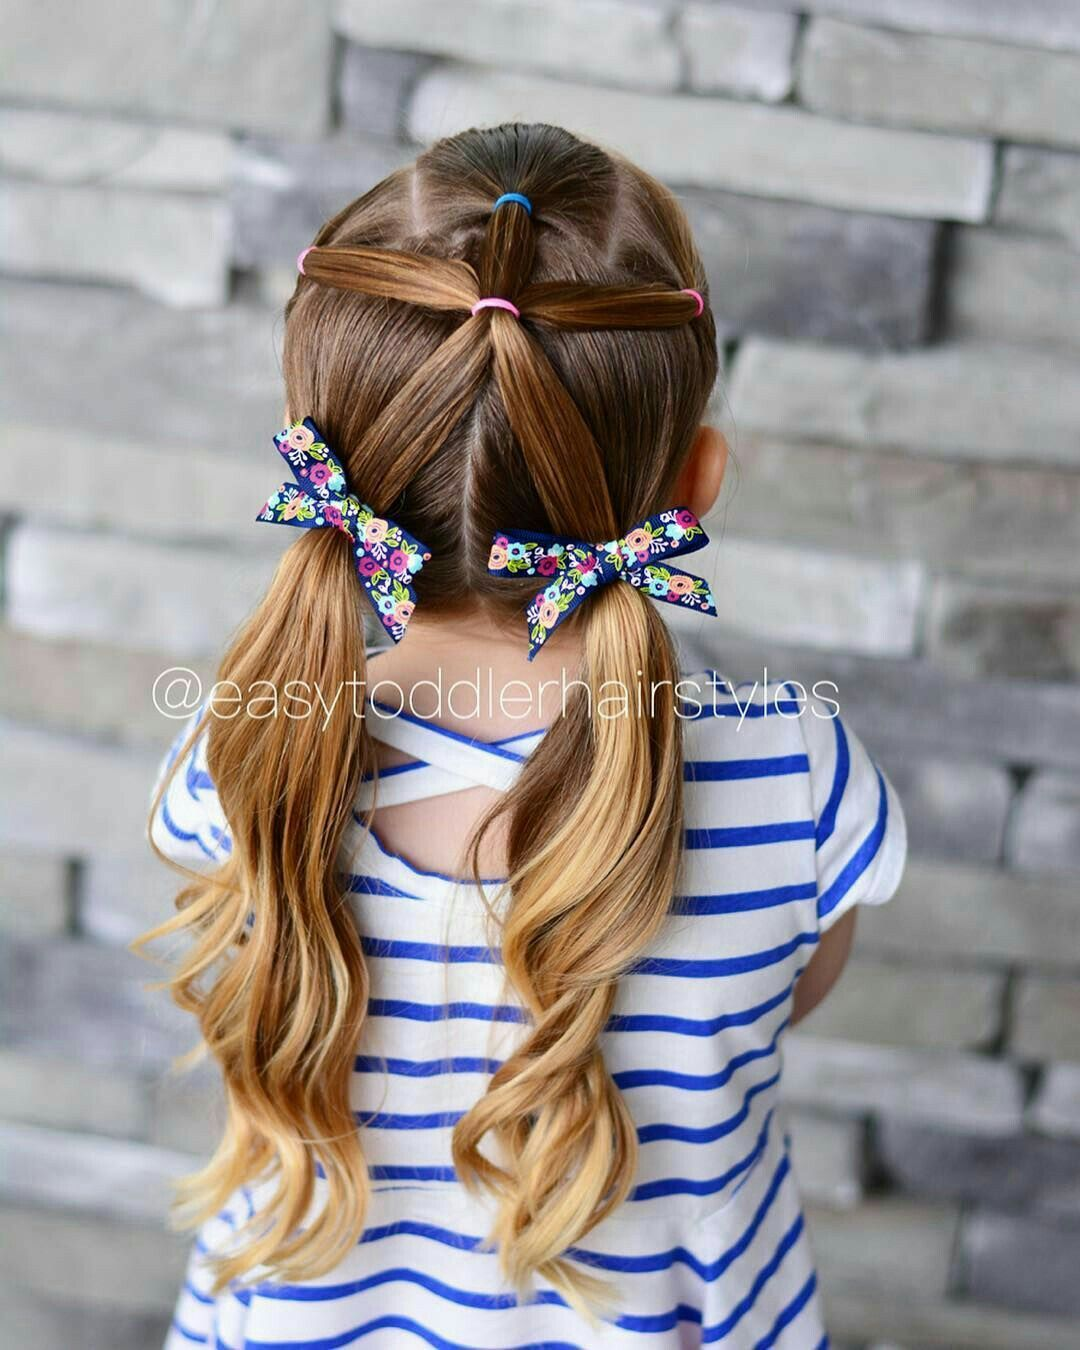 hairstyle for nevaeh | hairstyles for nini in 2019 | hair